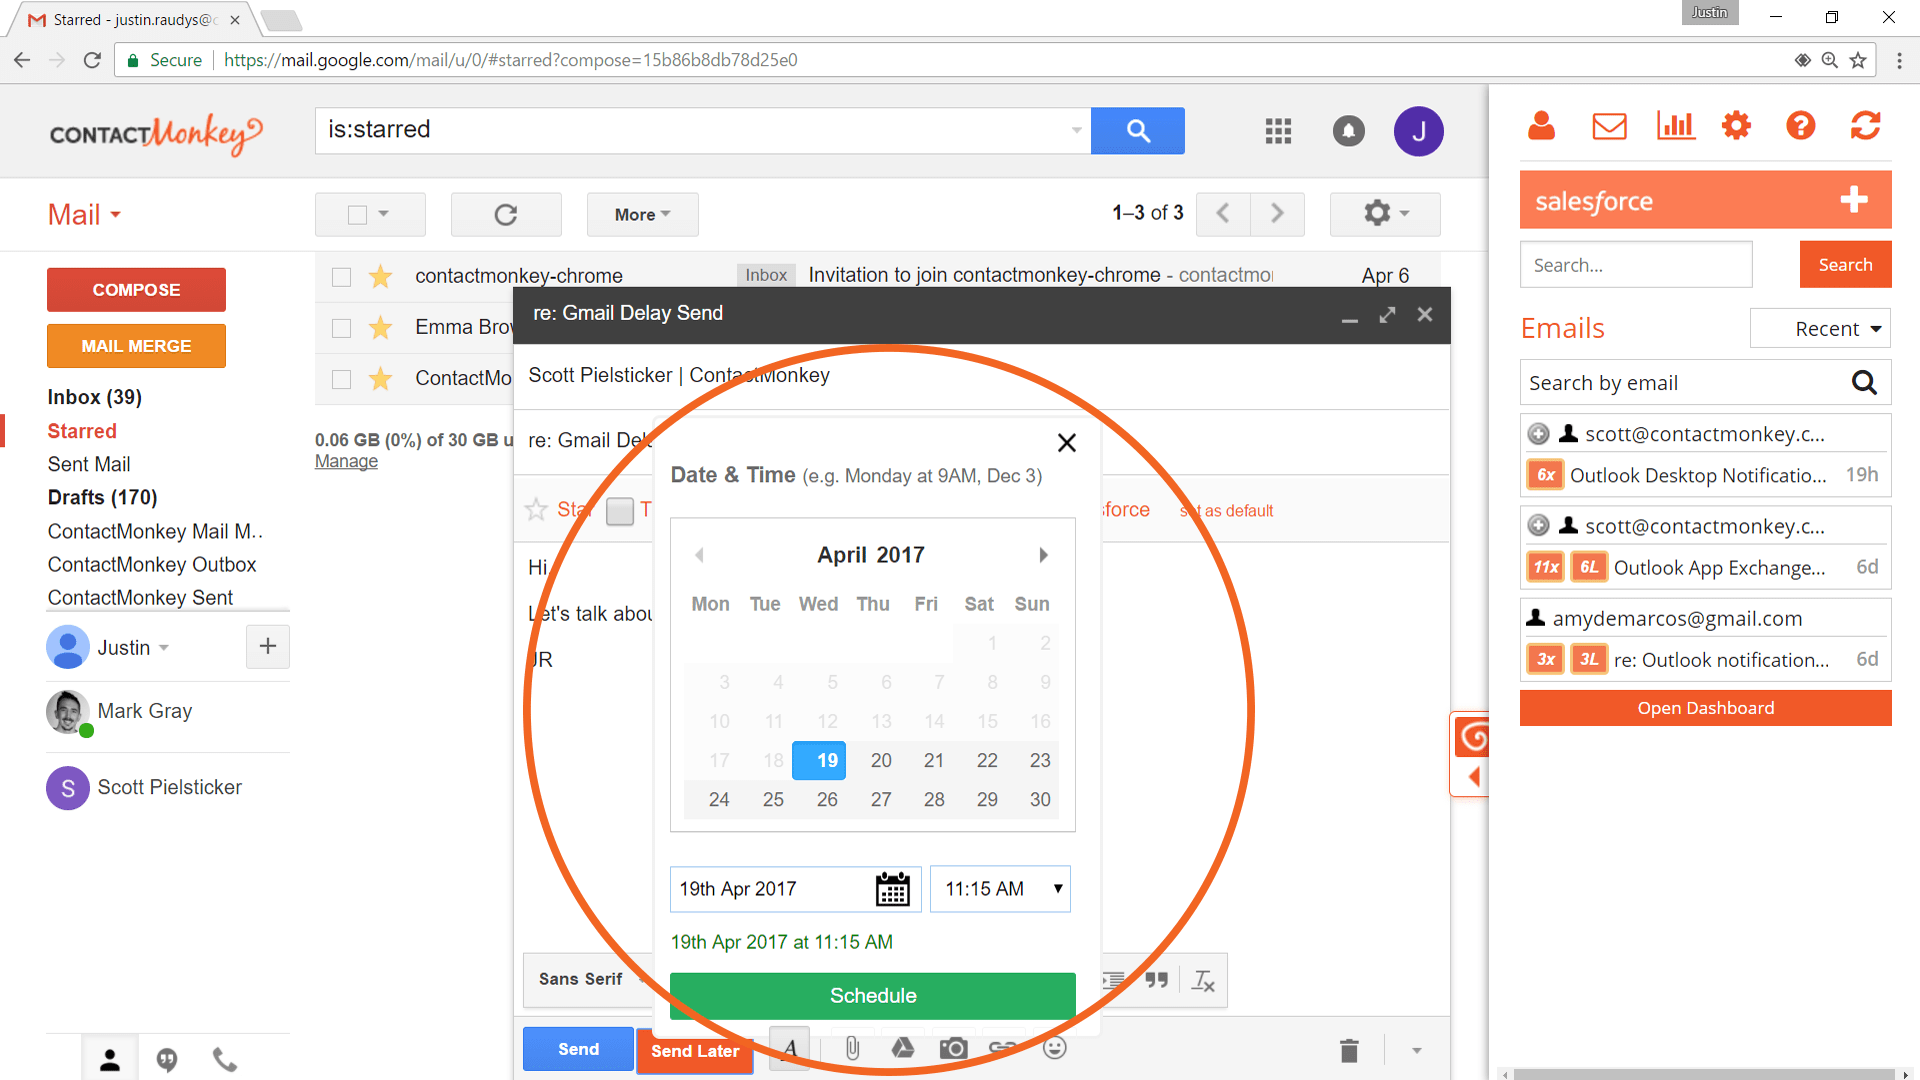 Gmail: Salesforce Integration & Email Tracking For Outlook